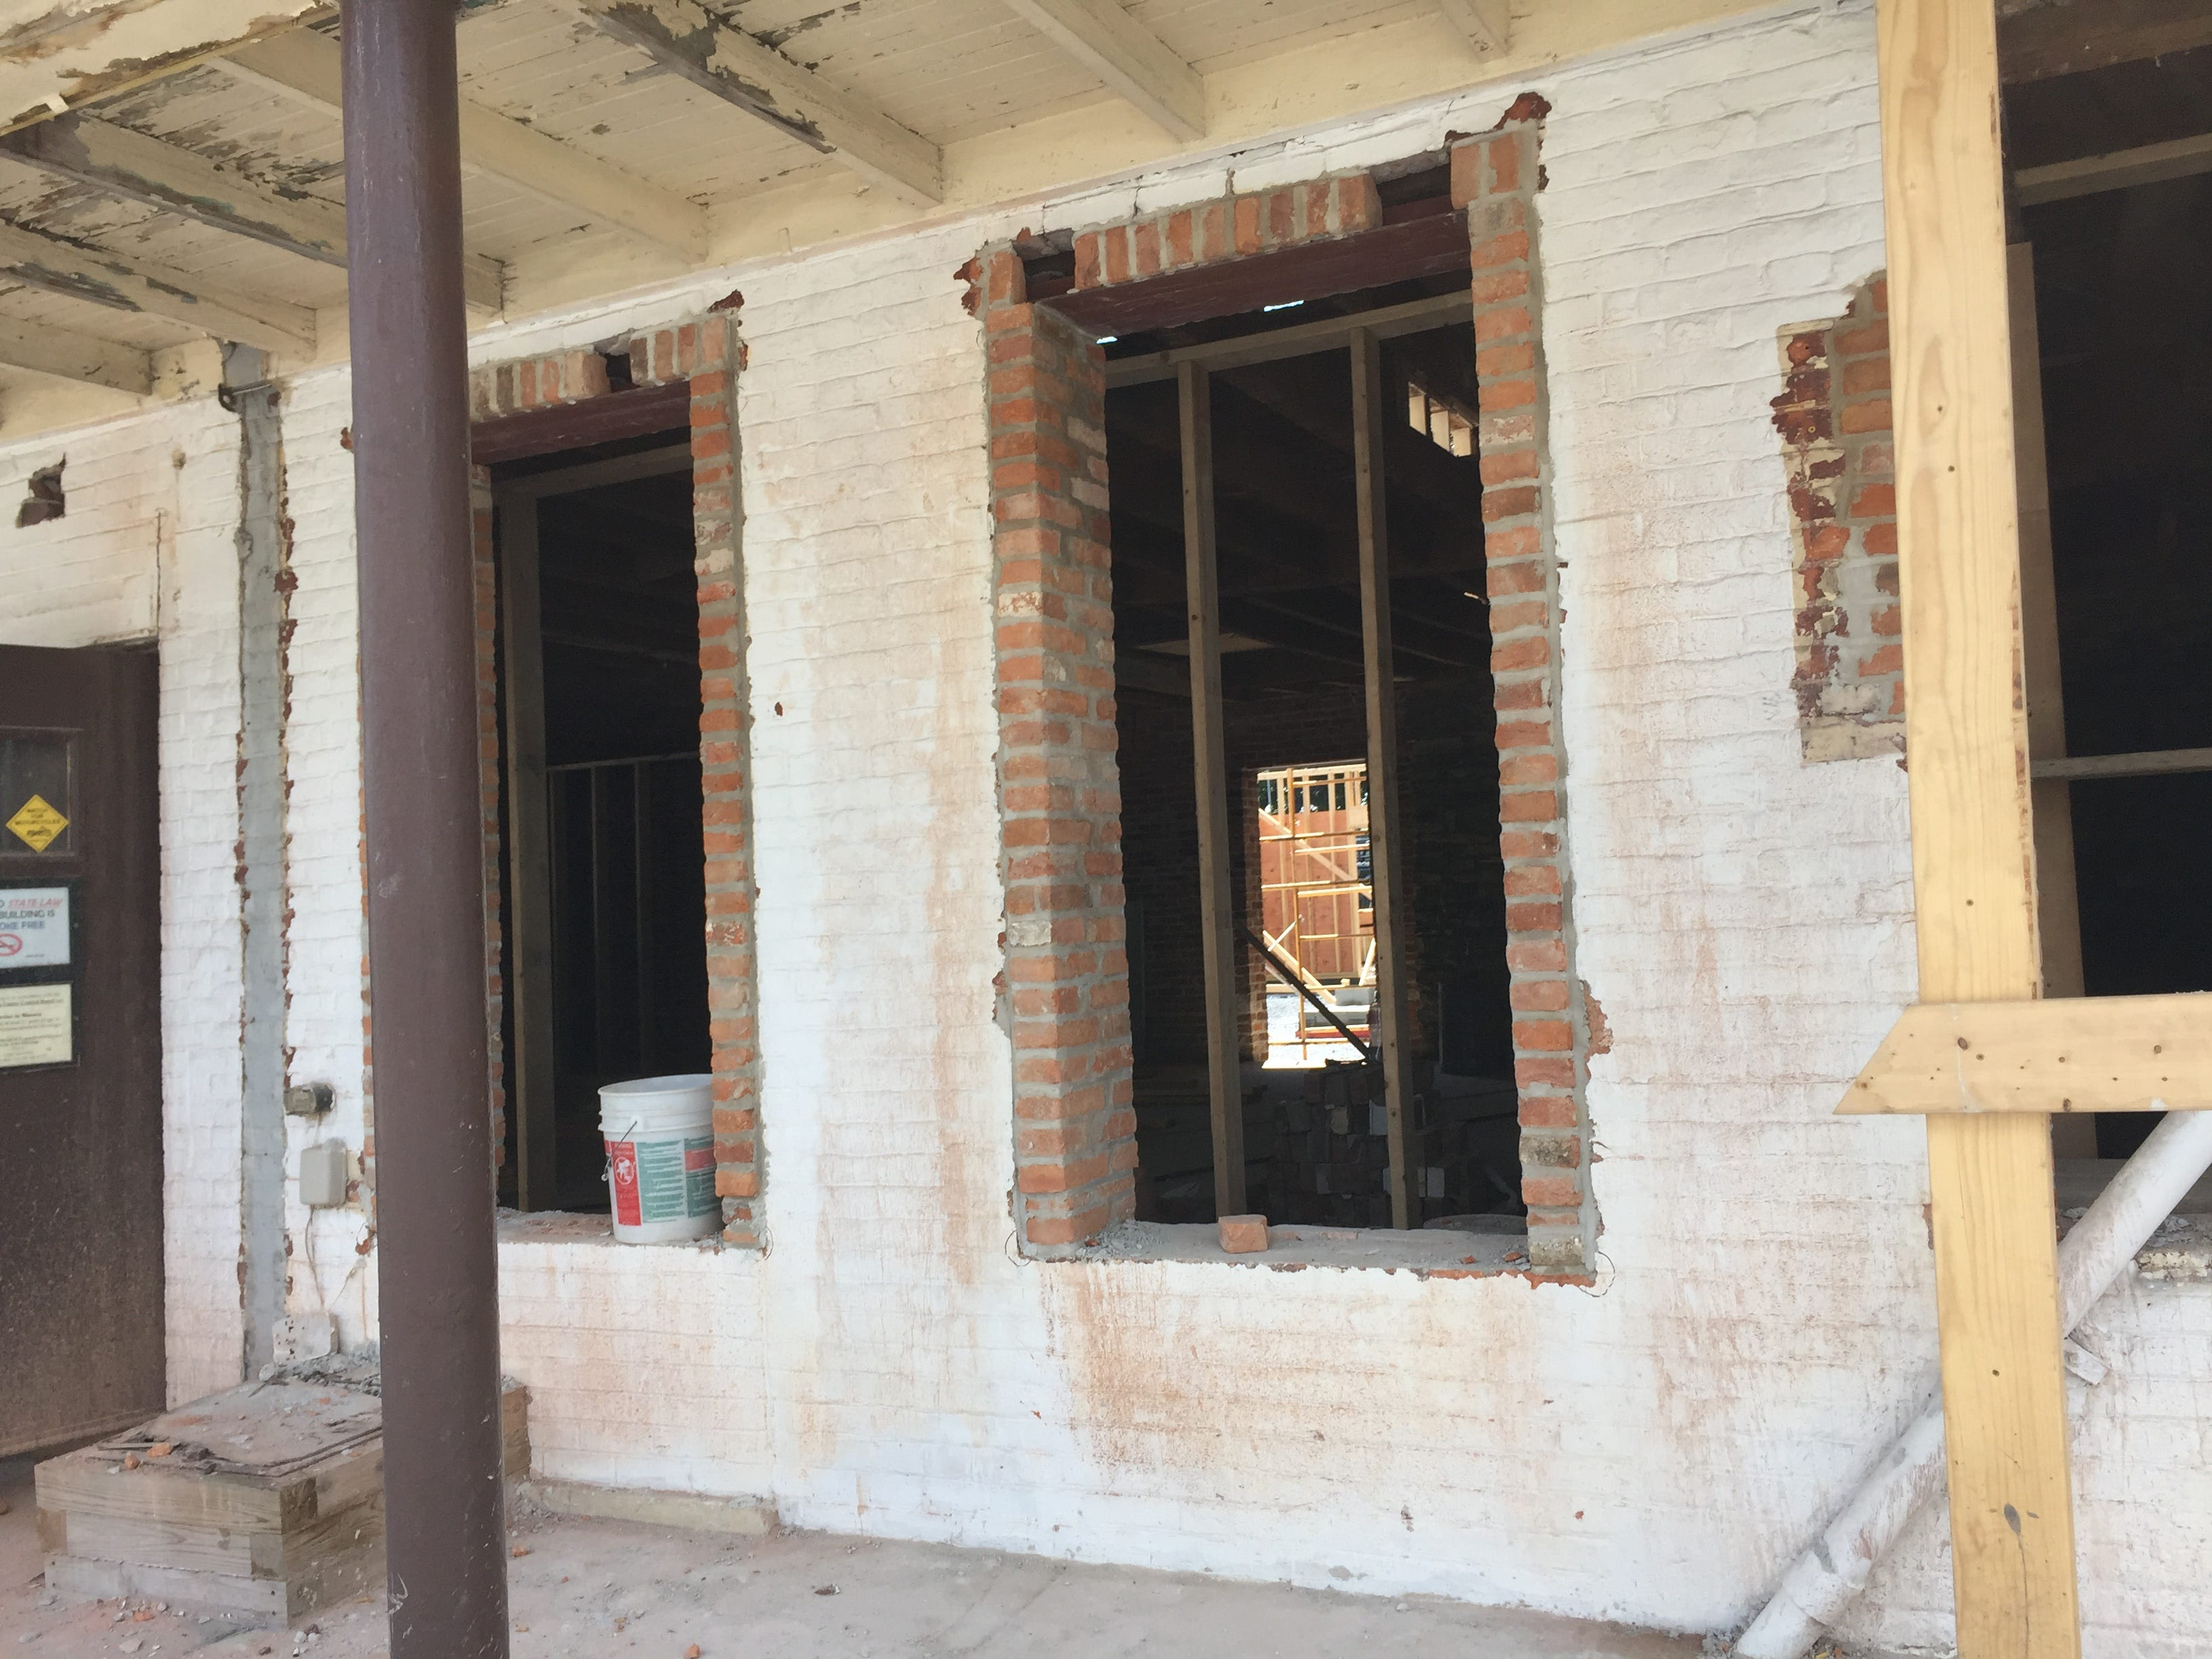 Rising Sun Kitchen & Bar was completely gutted and restored during an arduous two-year process.